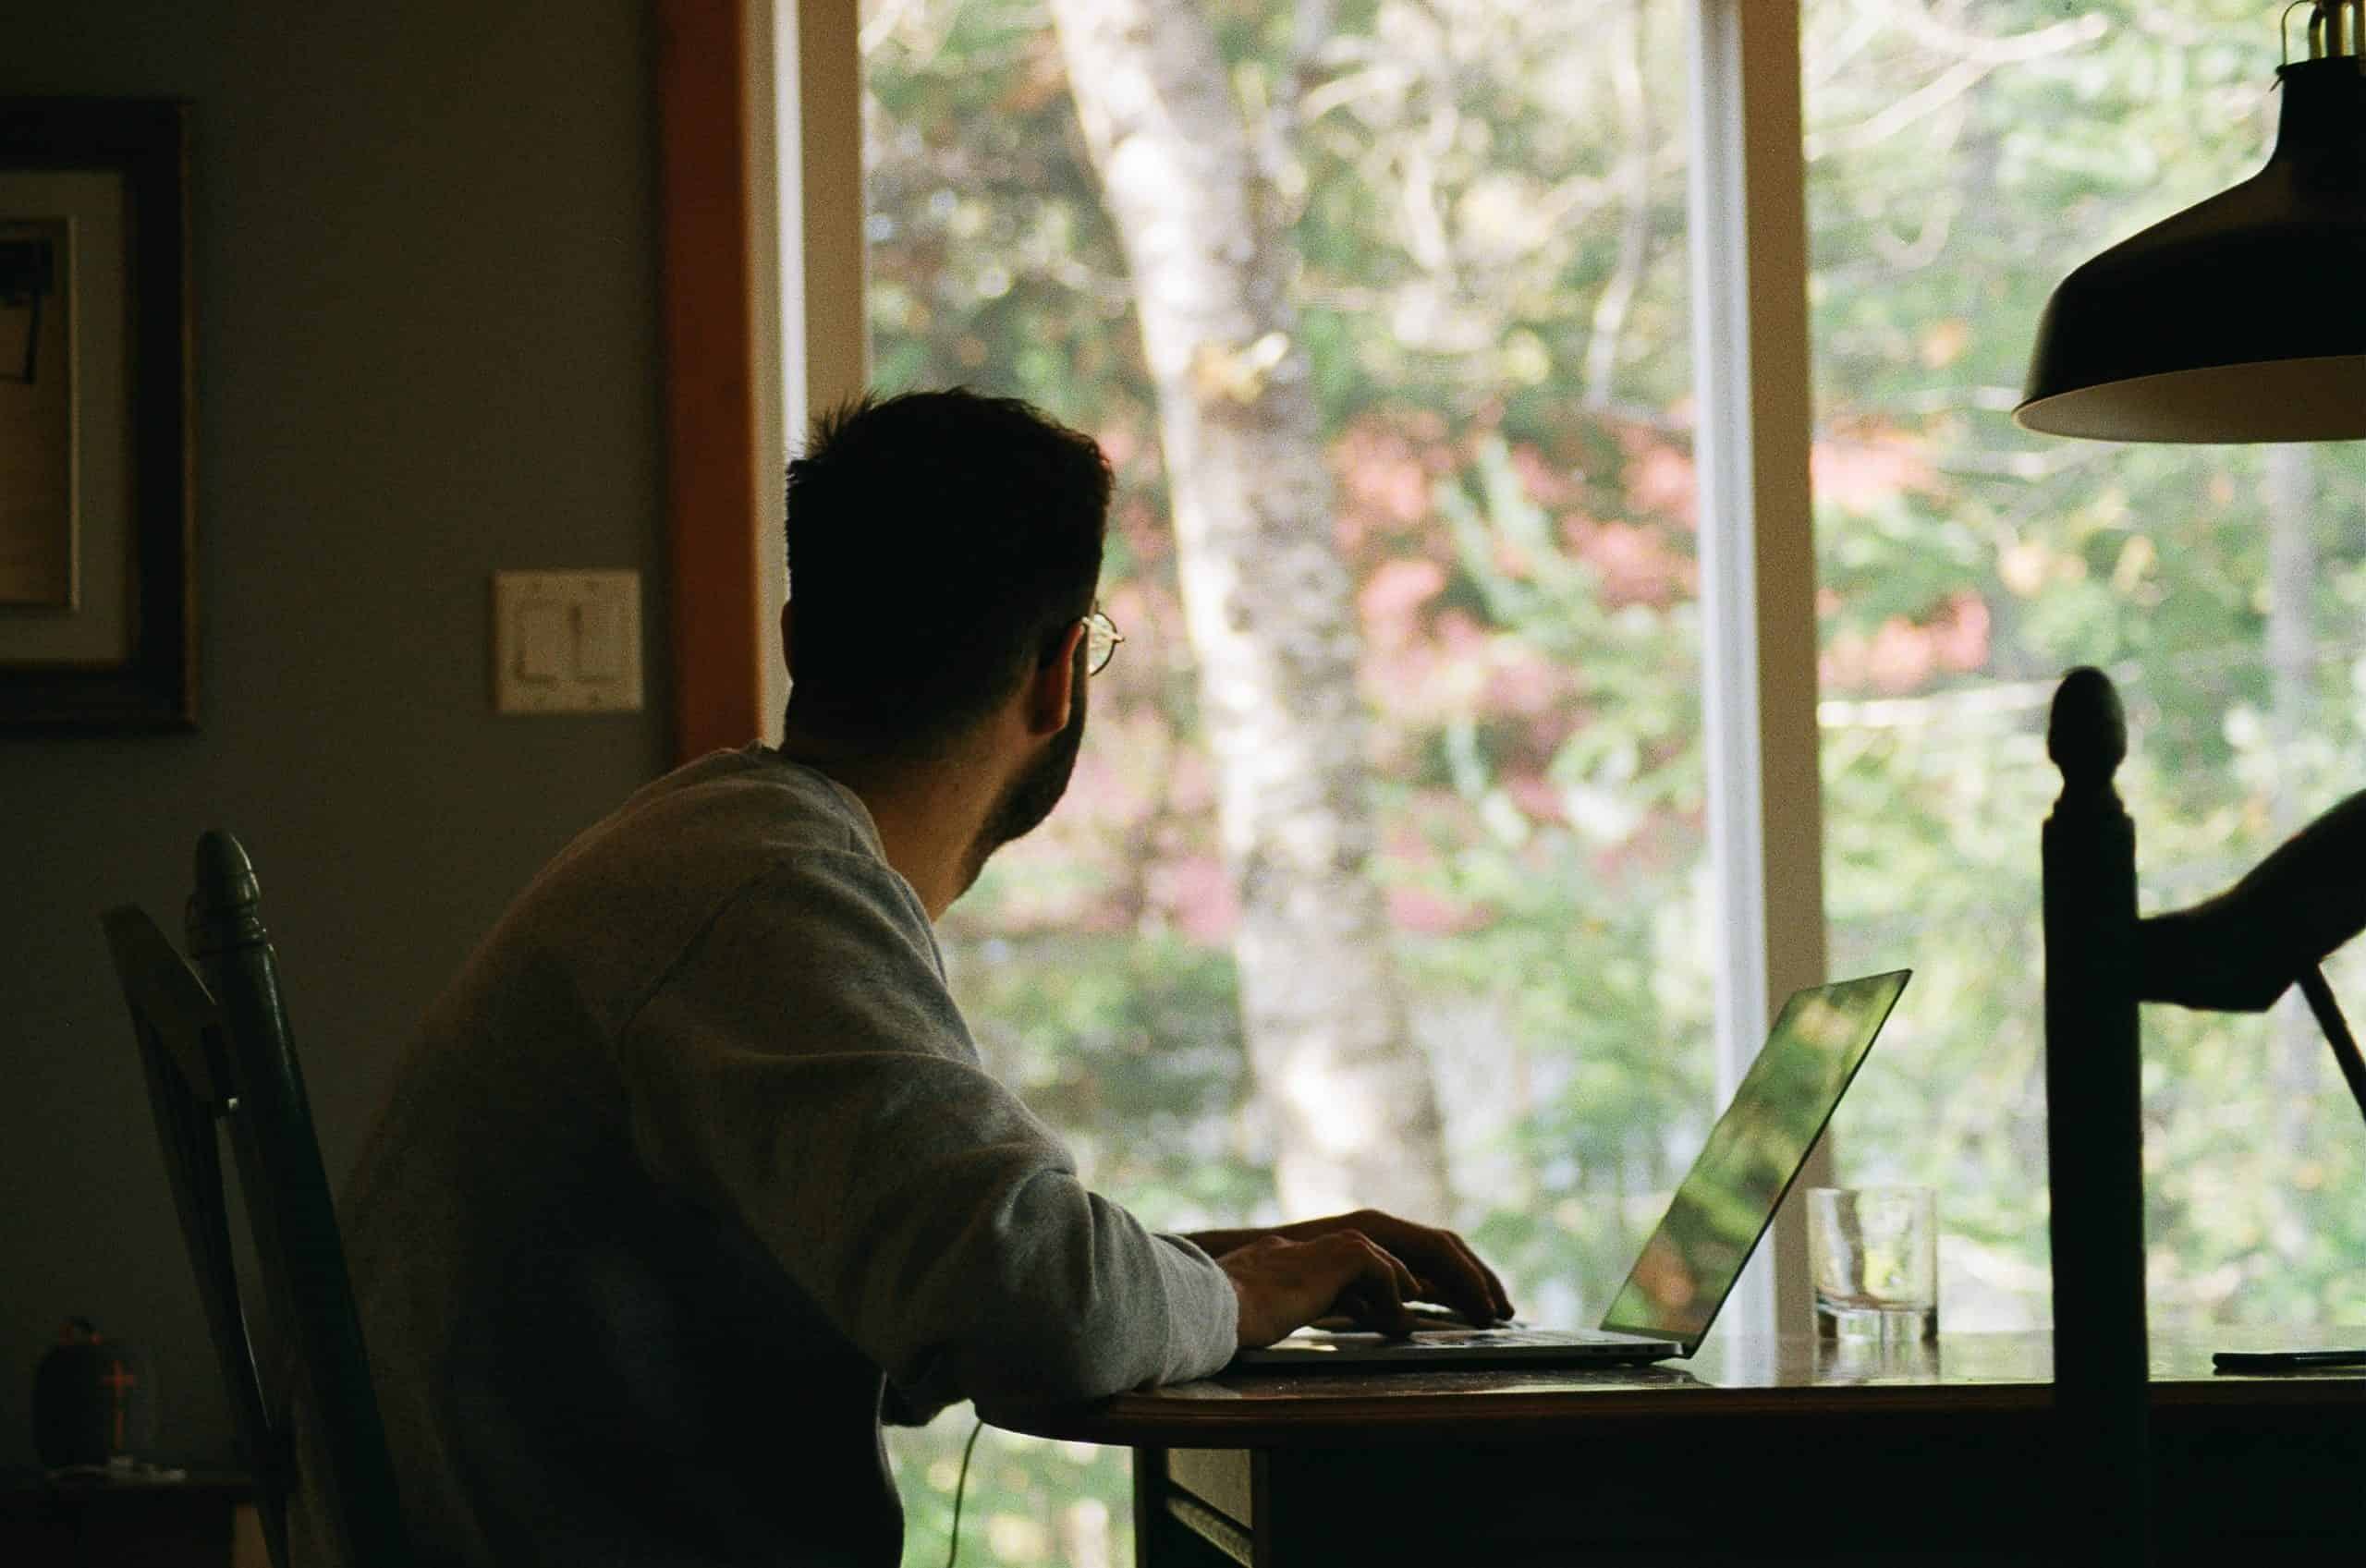 man looking out window while working